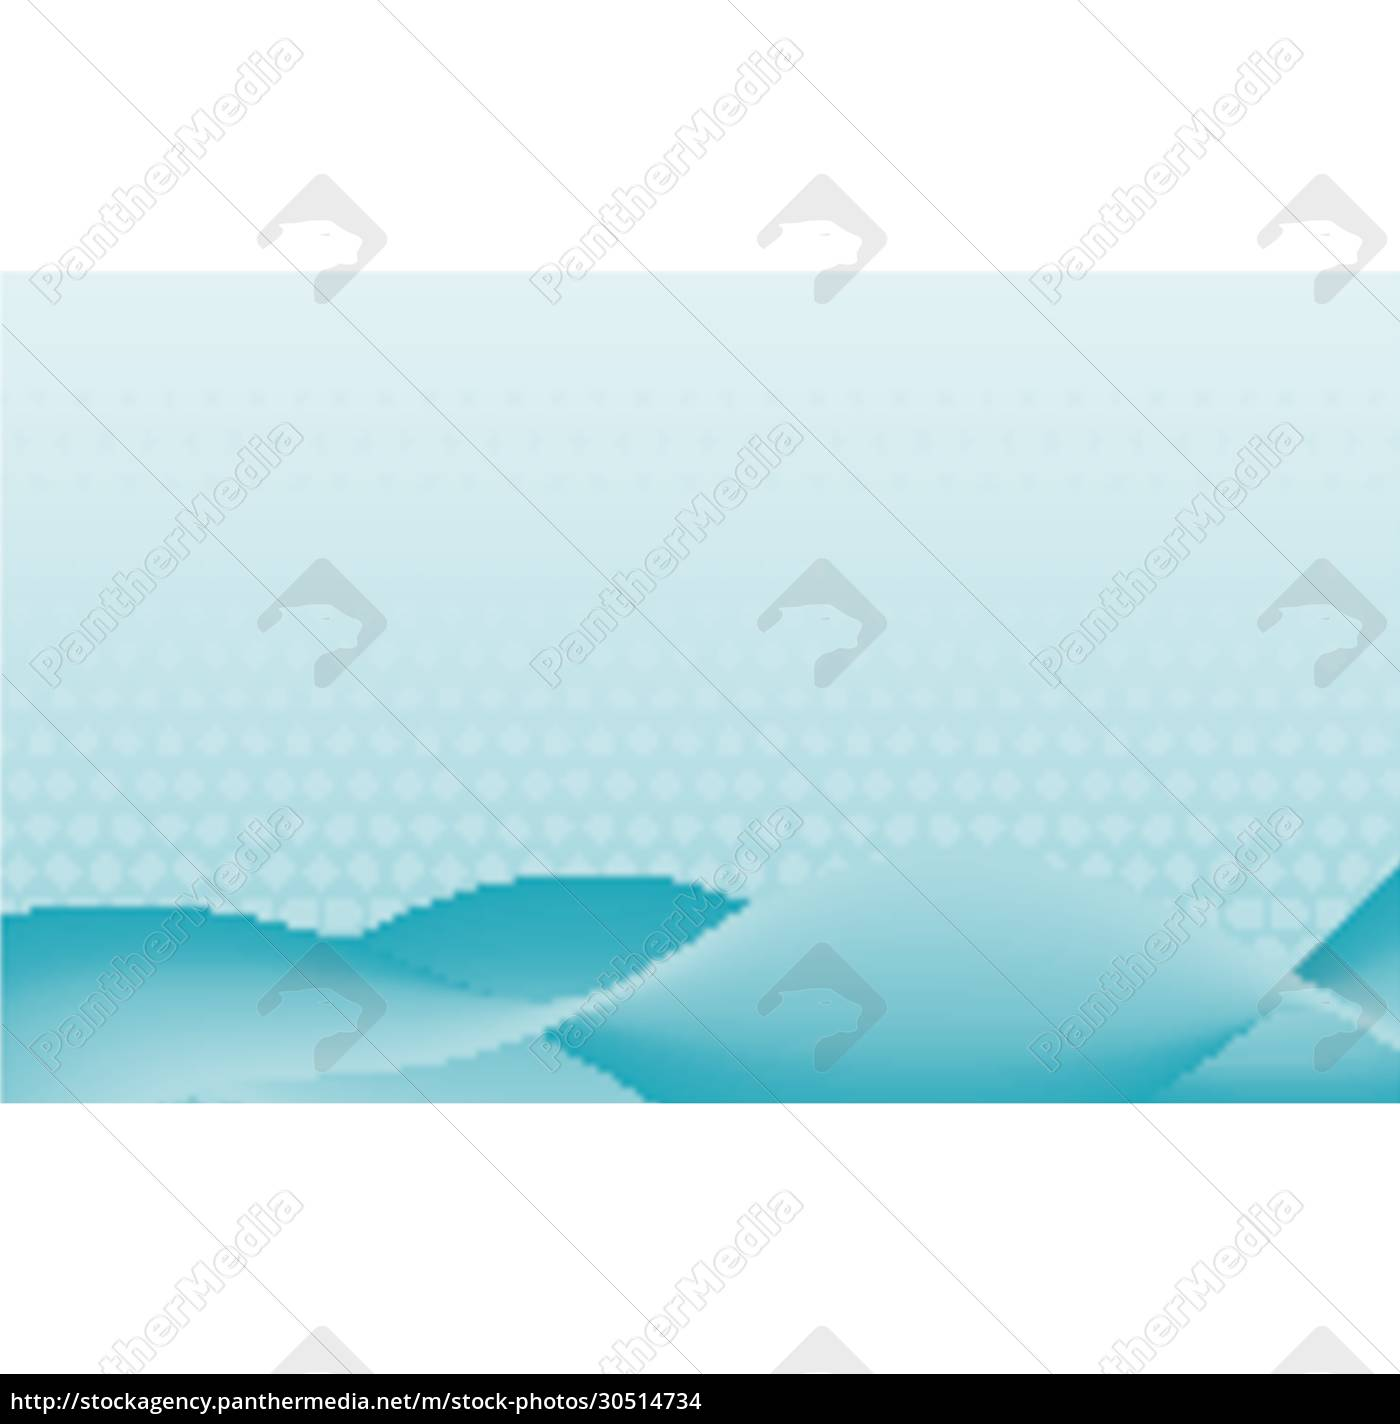 background, template, with, abstract, patterns - 30514734